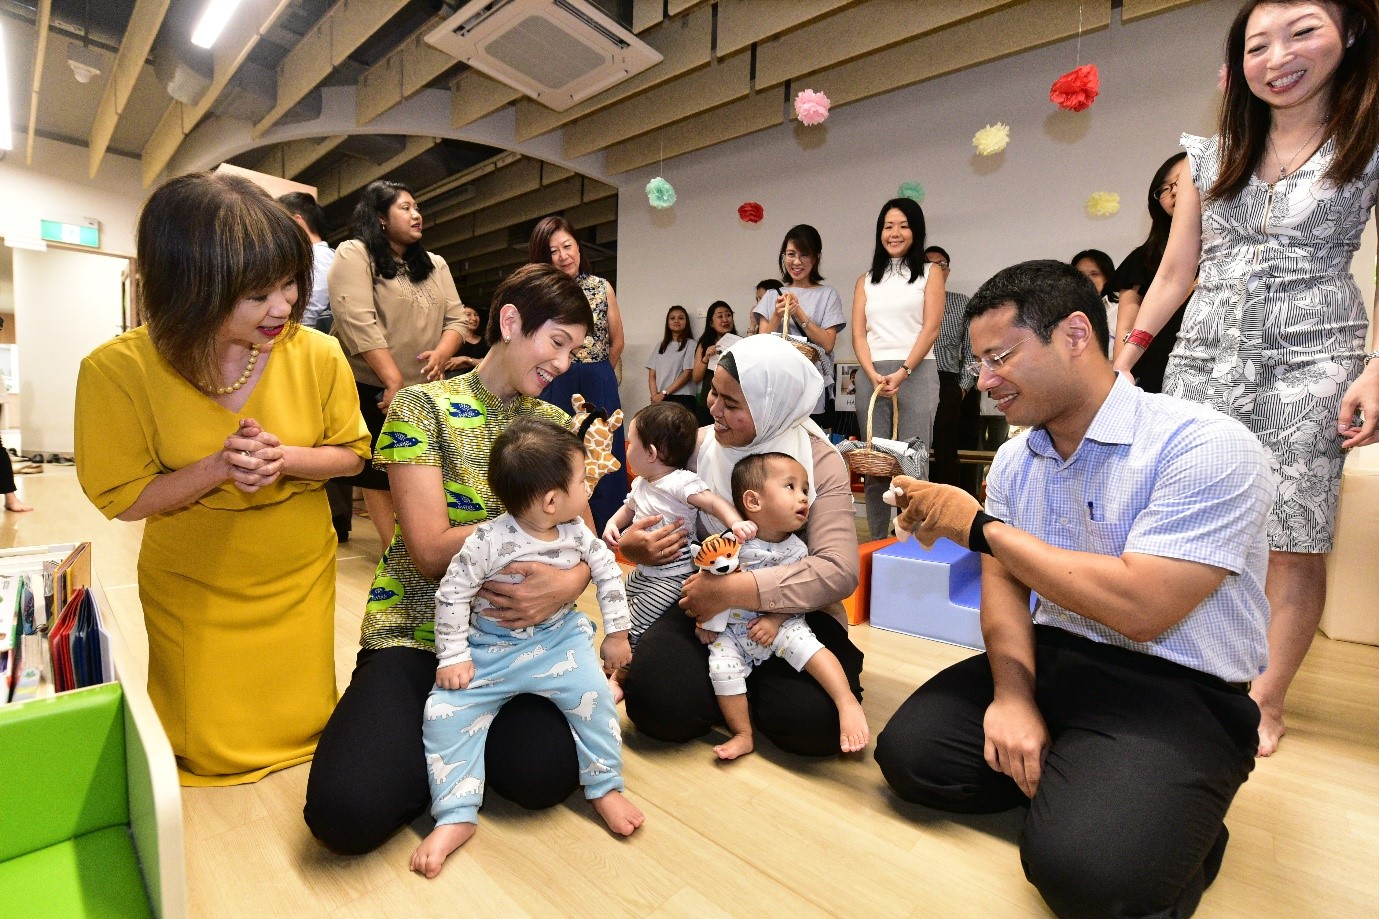 Minister Teo, Minister Lee and SMS Dr Amy Khor playing with the children at My First Skool's infant care.